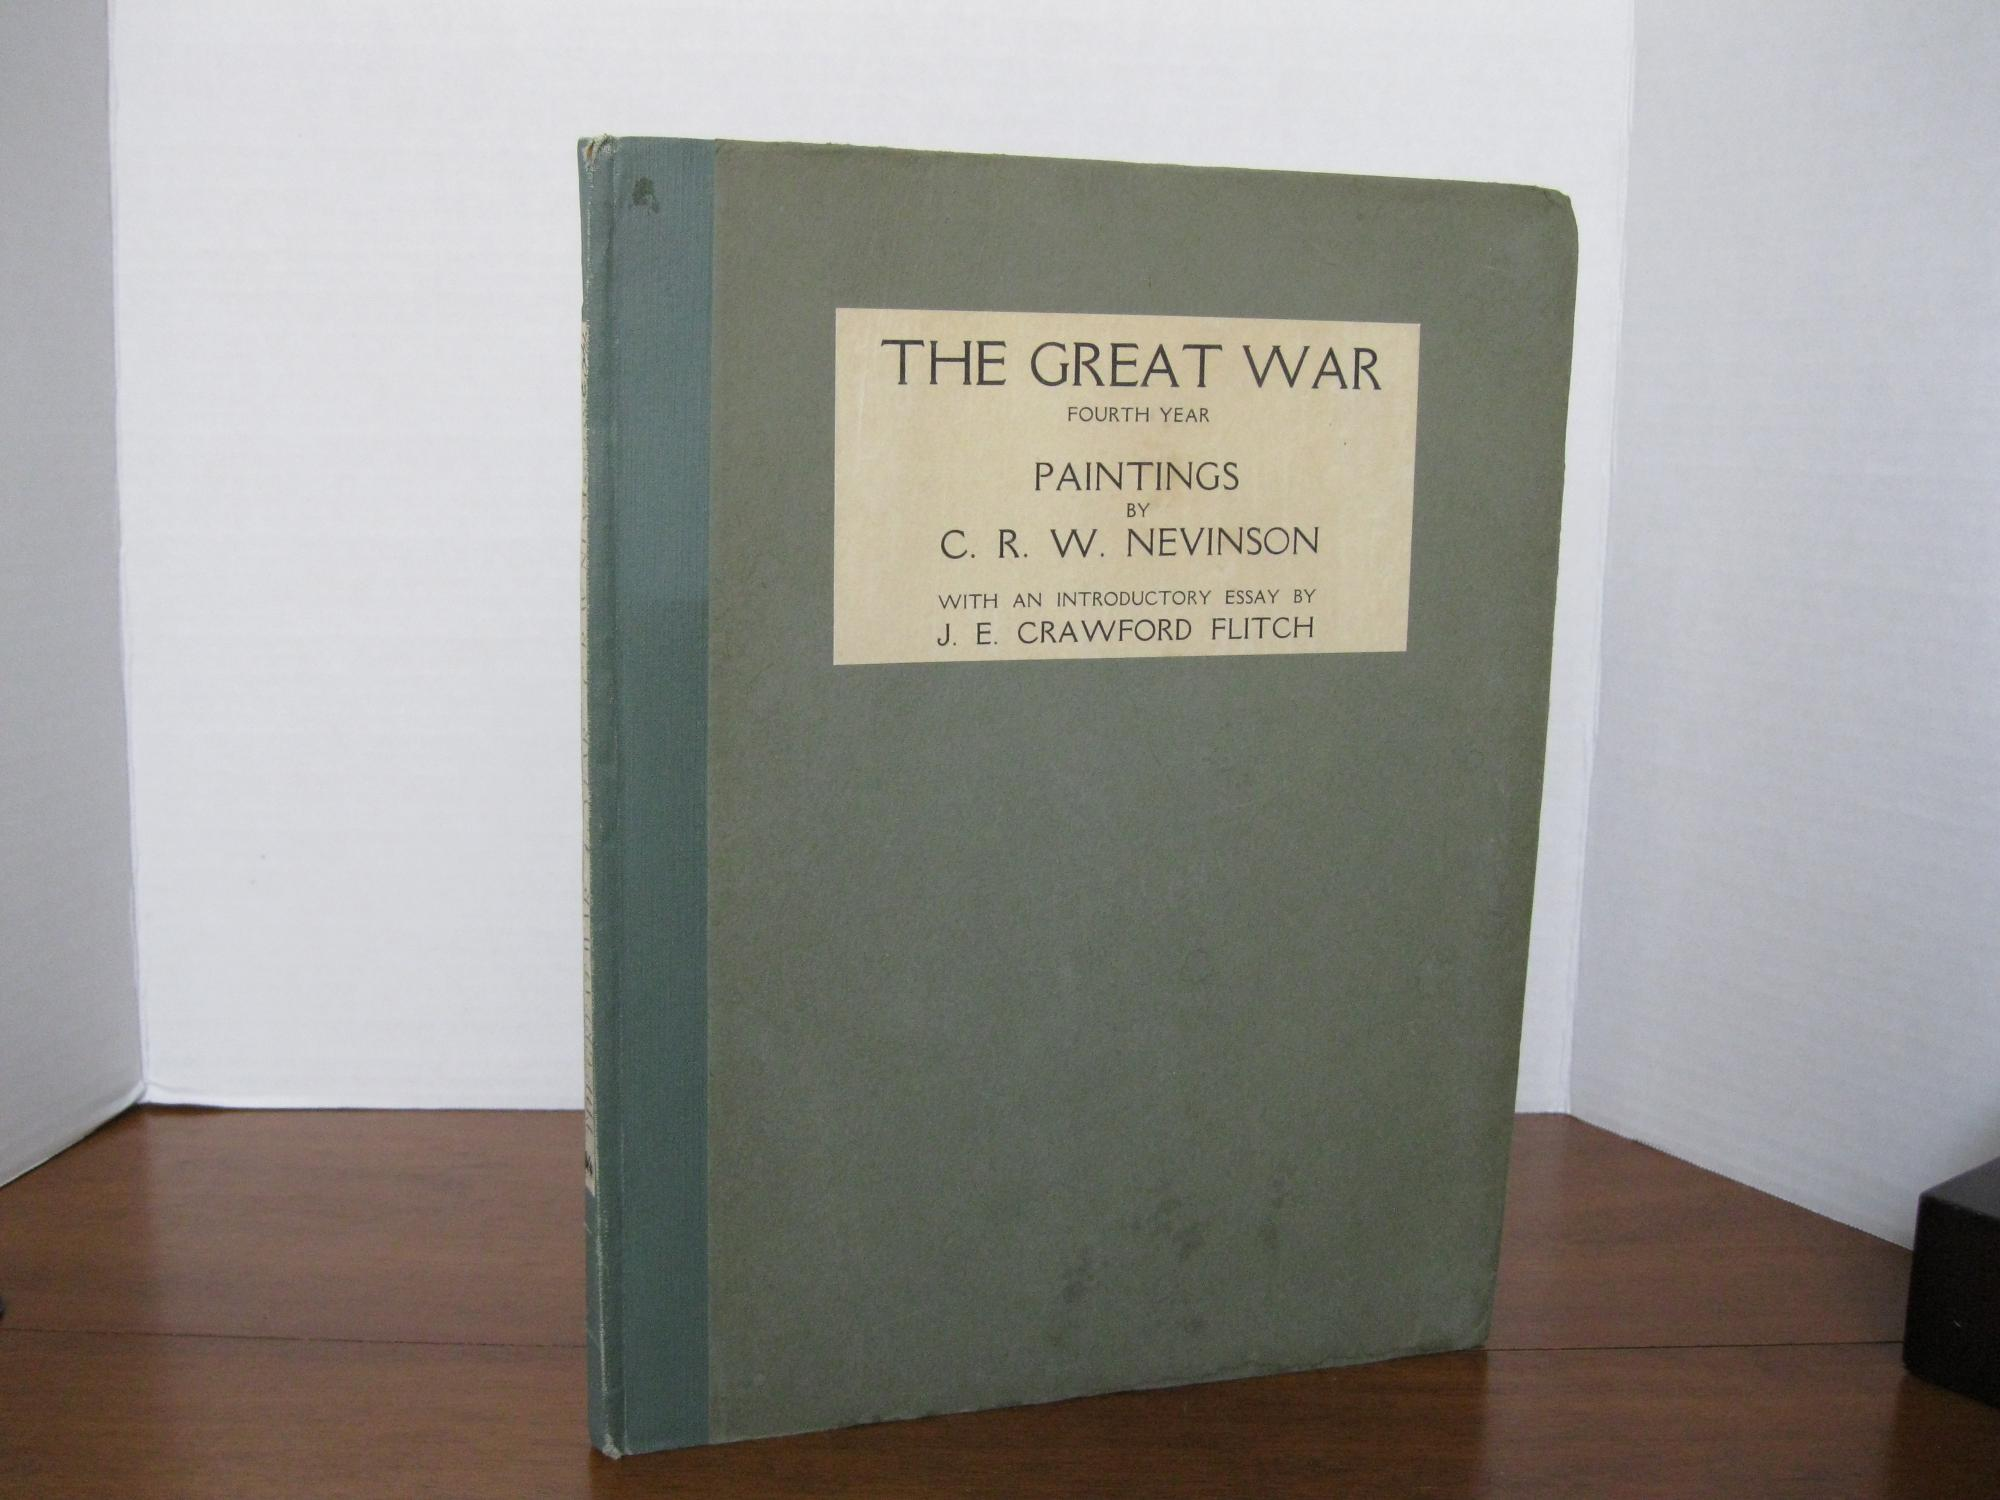 THE_GREAT_WAR_FOURTH_YEAR_FLITCH_JE_CRAWFORD_Introductory_Essay_Very_Good_Hardcover